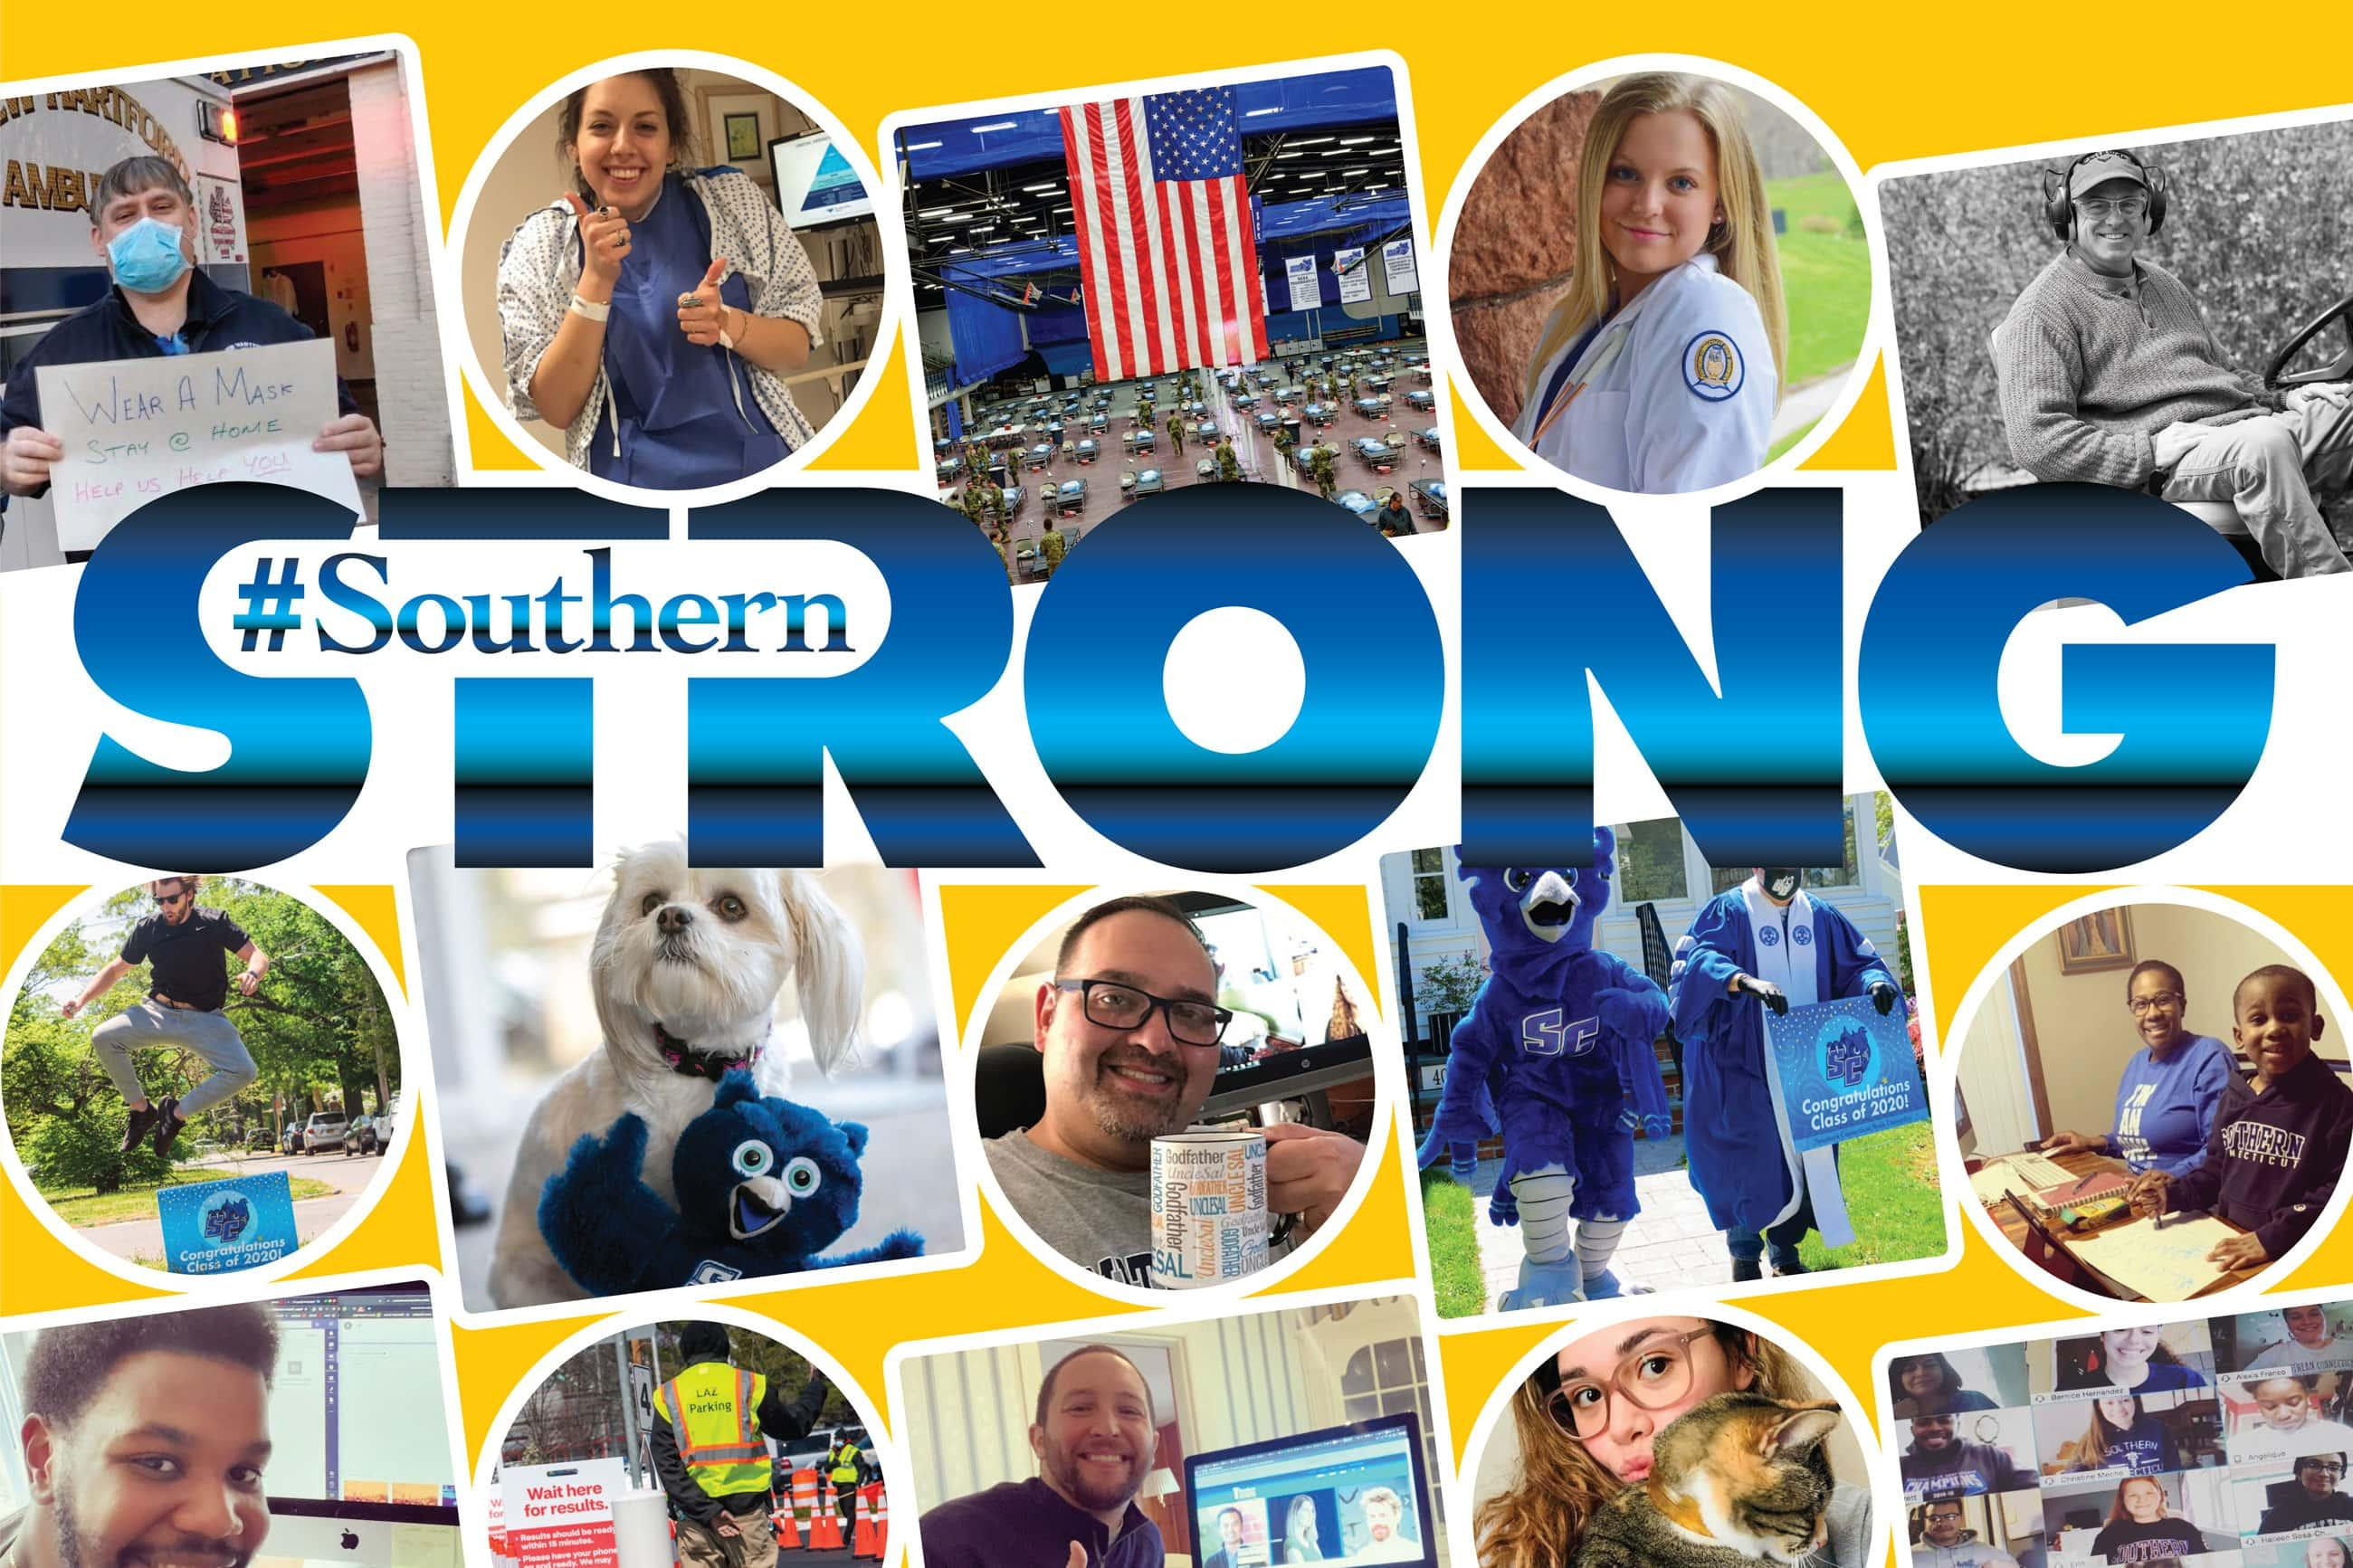 collage of images from the #SouthernStrong hashtag